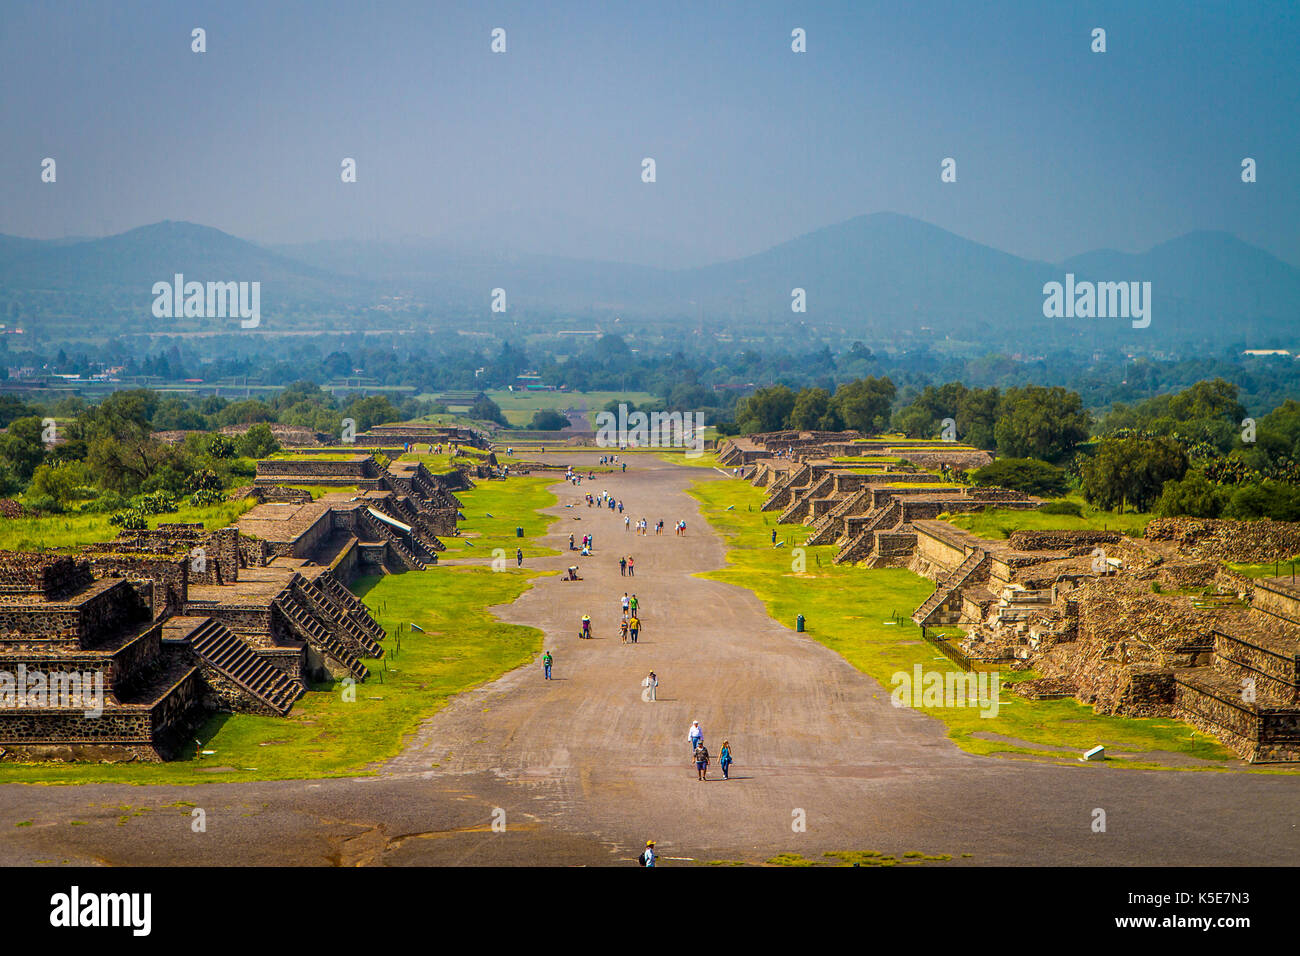 Avenue of the Dead, Teotihuacan, Mexico - Stock Image